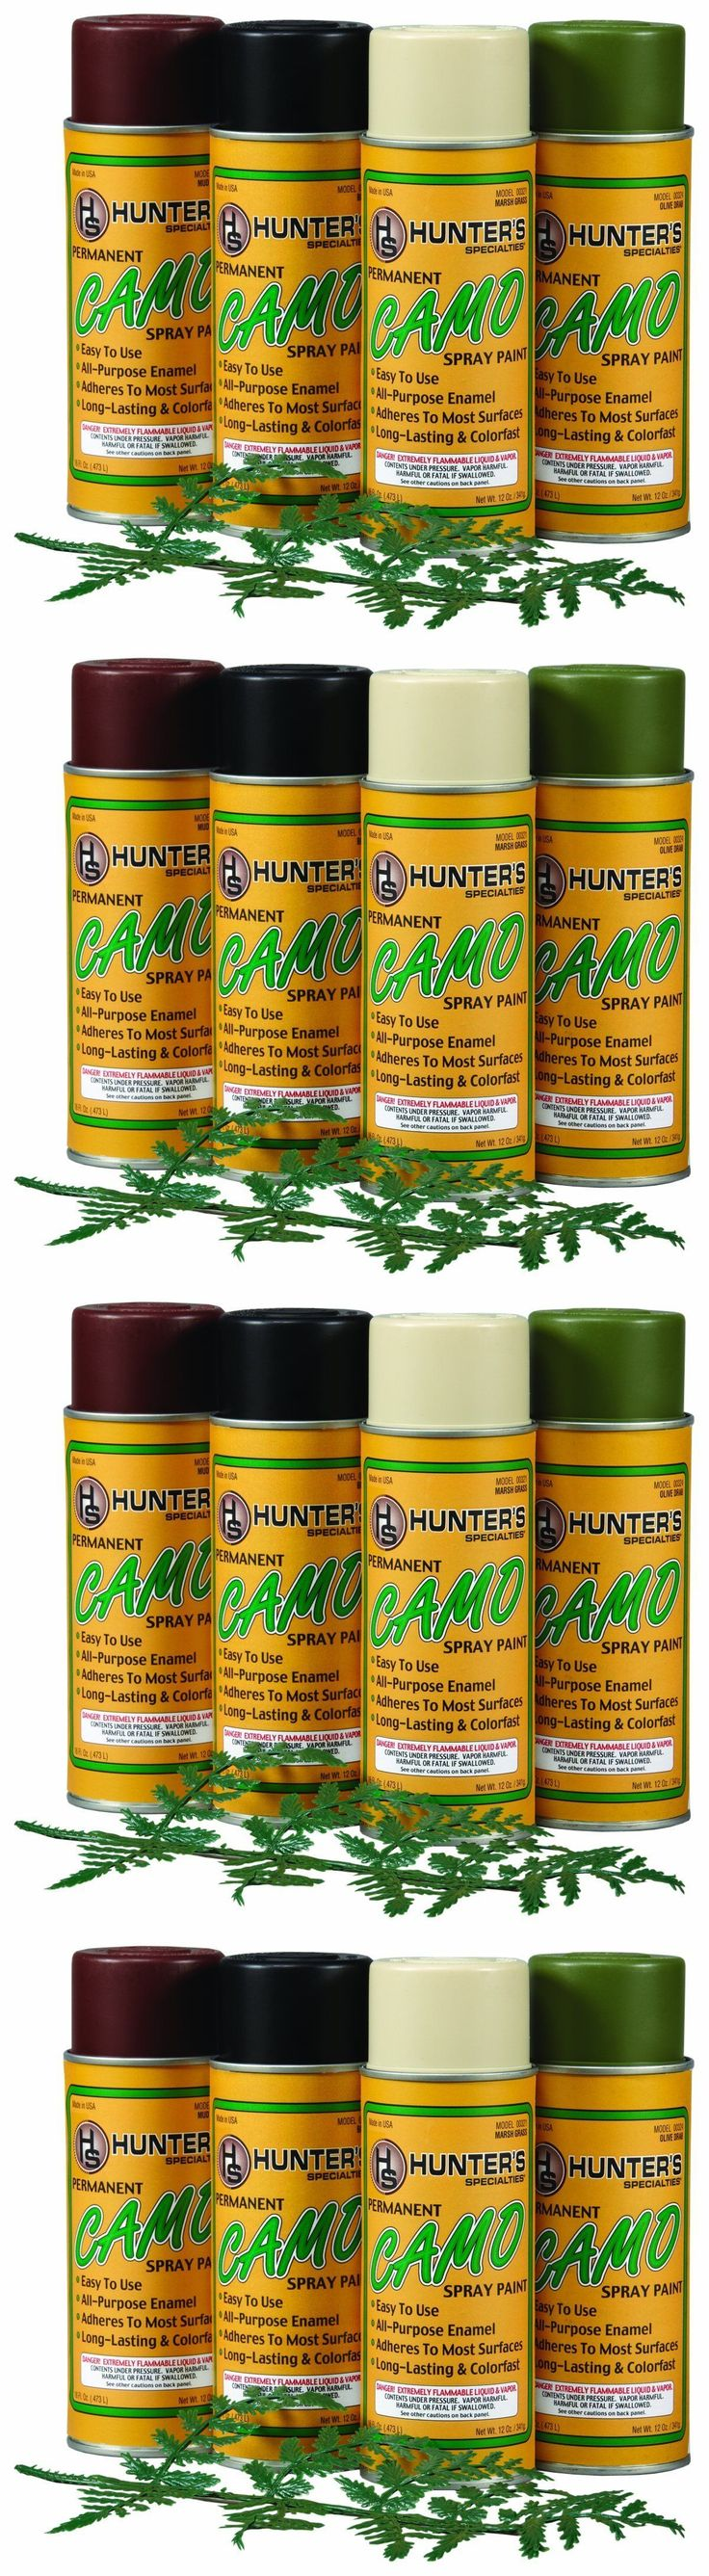 Best 25 camo spray paint ideas only on pinterest camo dipping how to hydro dip and cheap european breaks